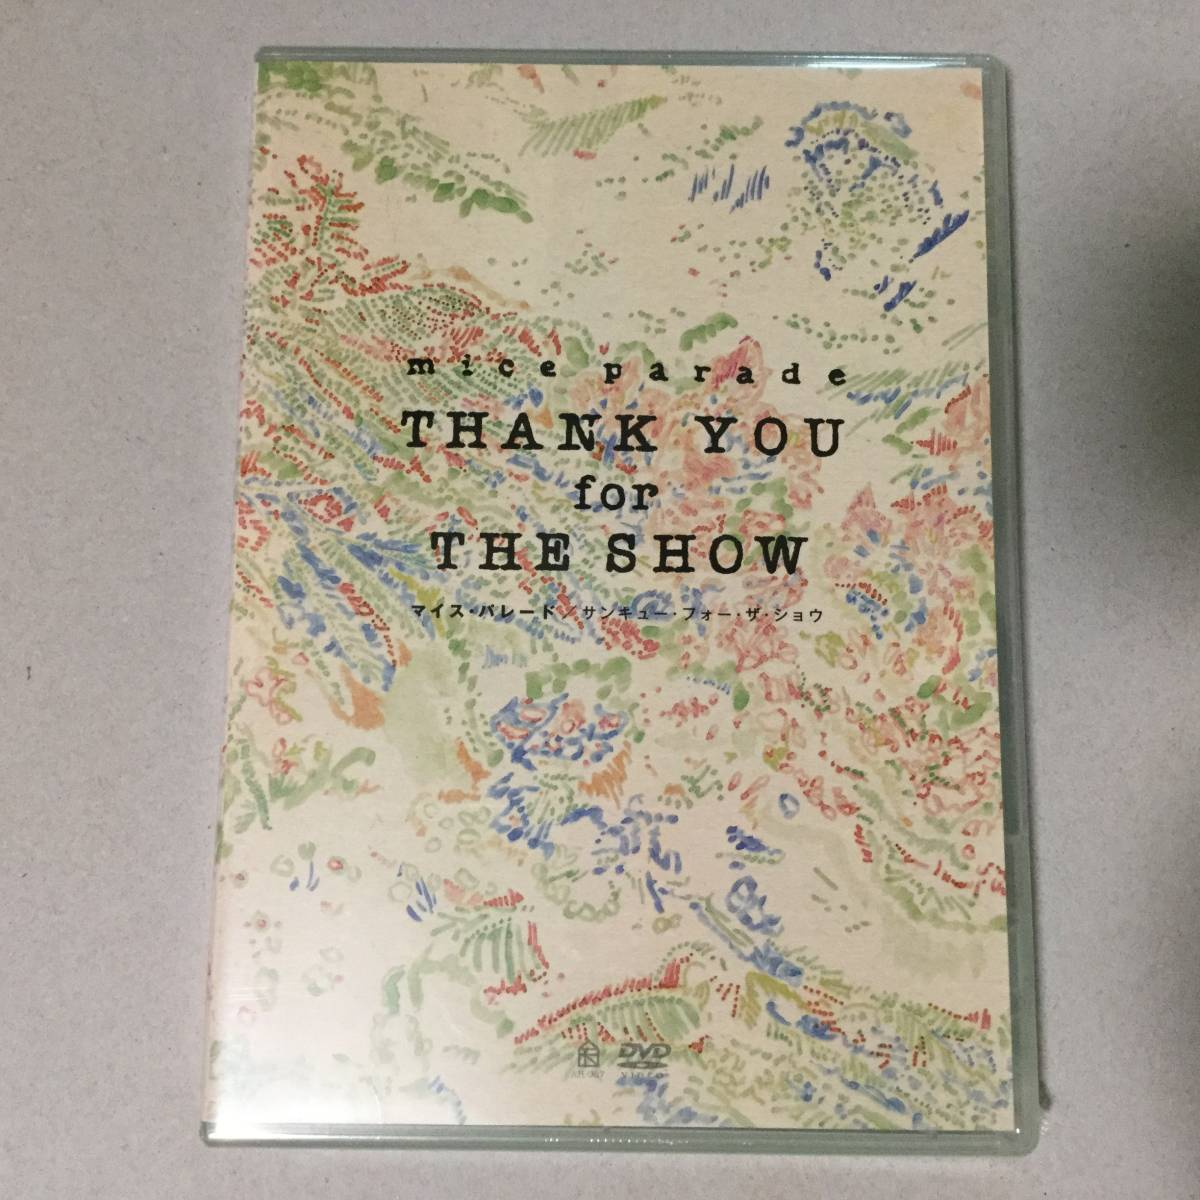 Mice Parade マイス・パレード - Thank You for The Show DVD 国内盤 Post Rock ポストロック_画像1